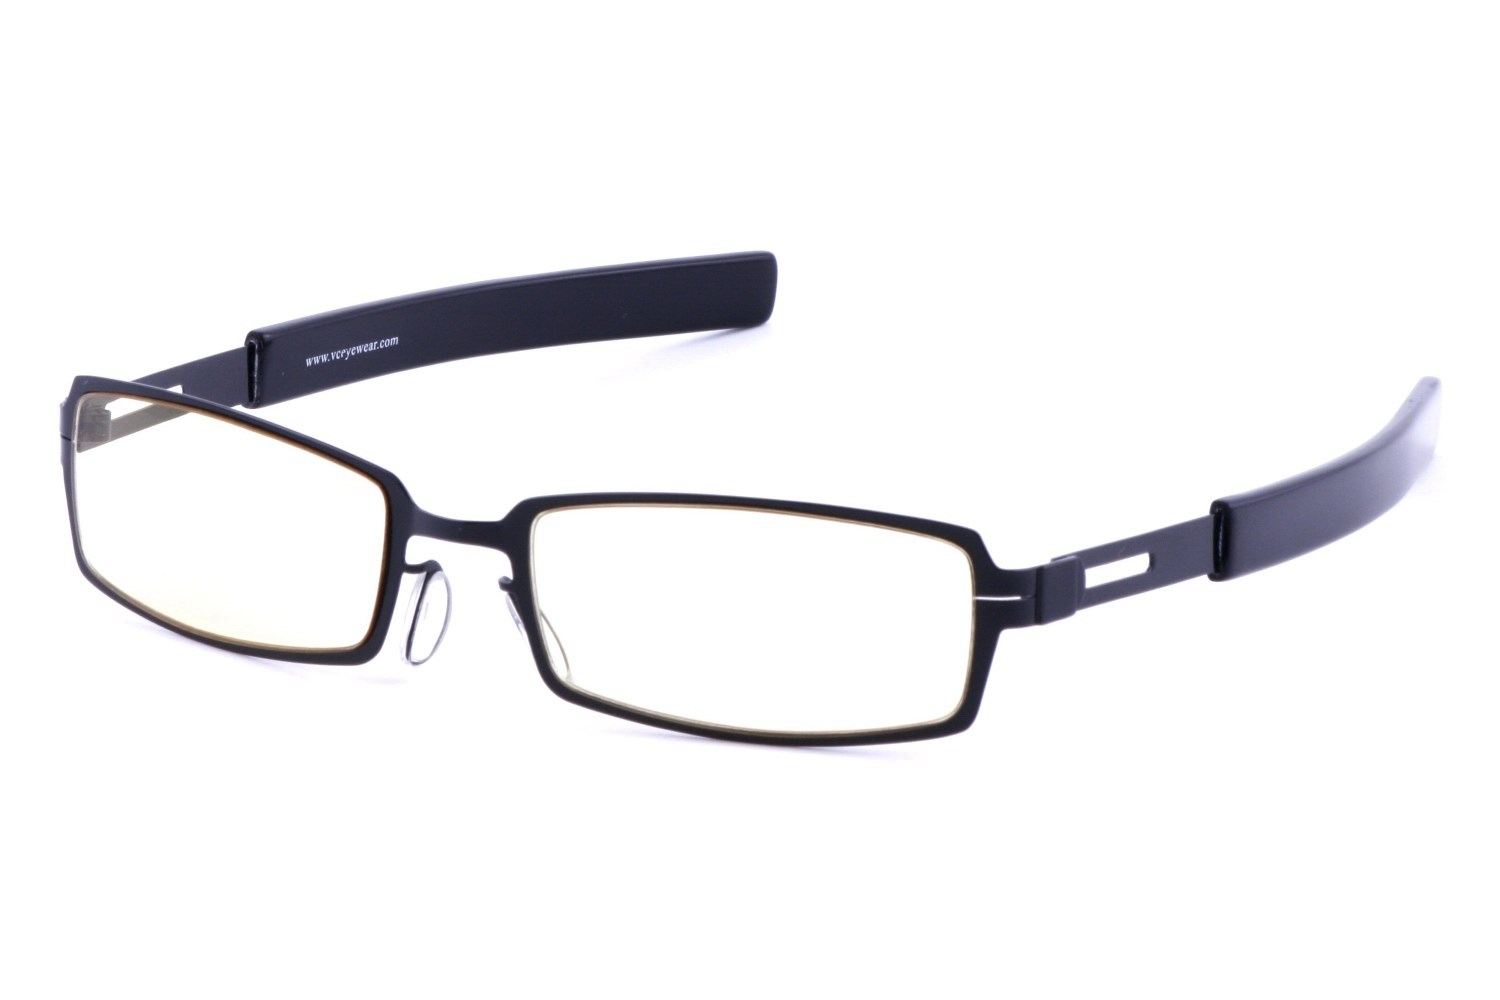 iVisionwear Anti Glare Digital Protection Glasses